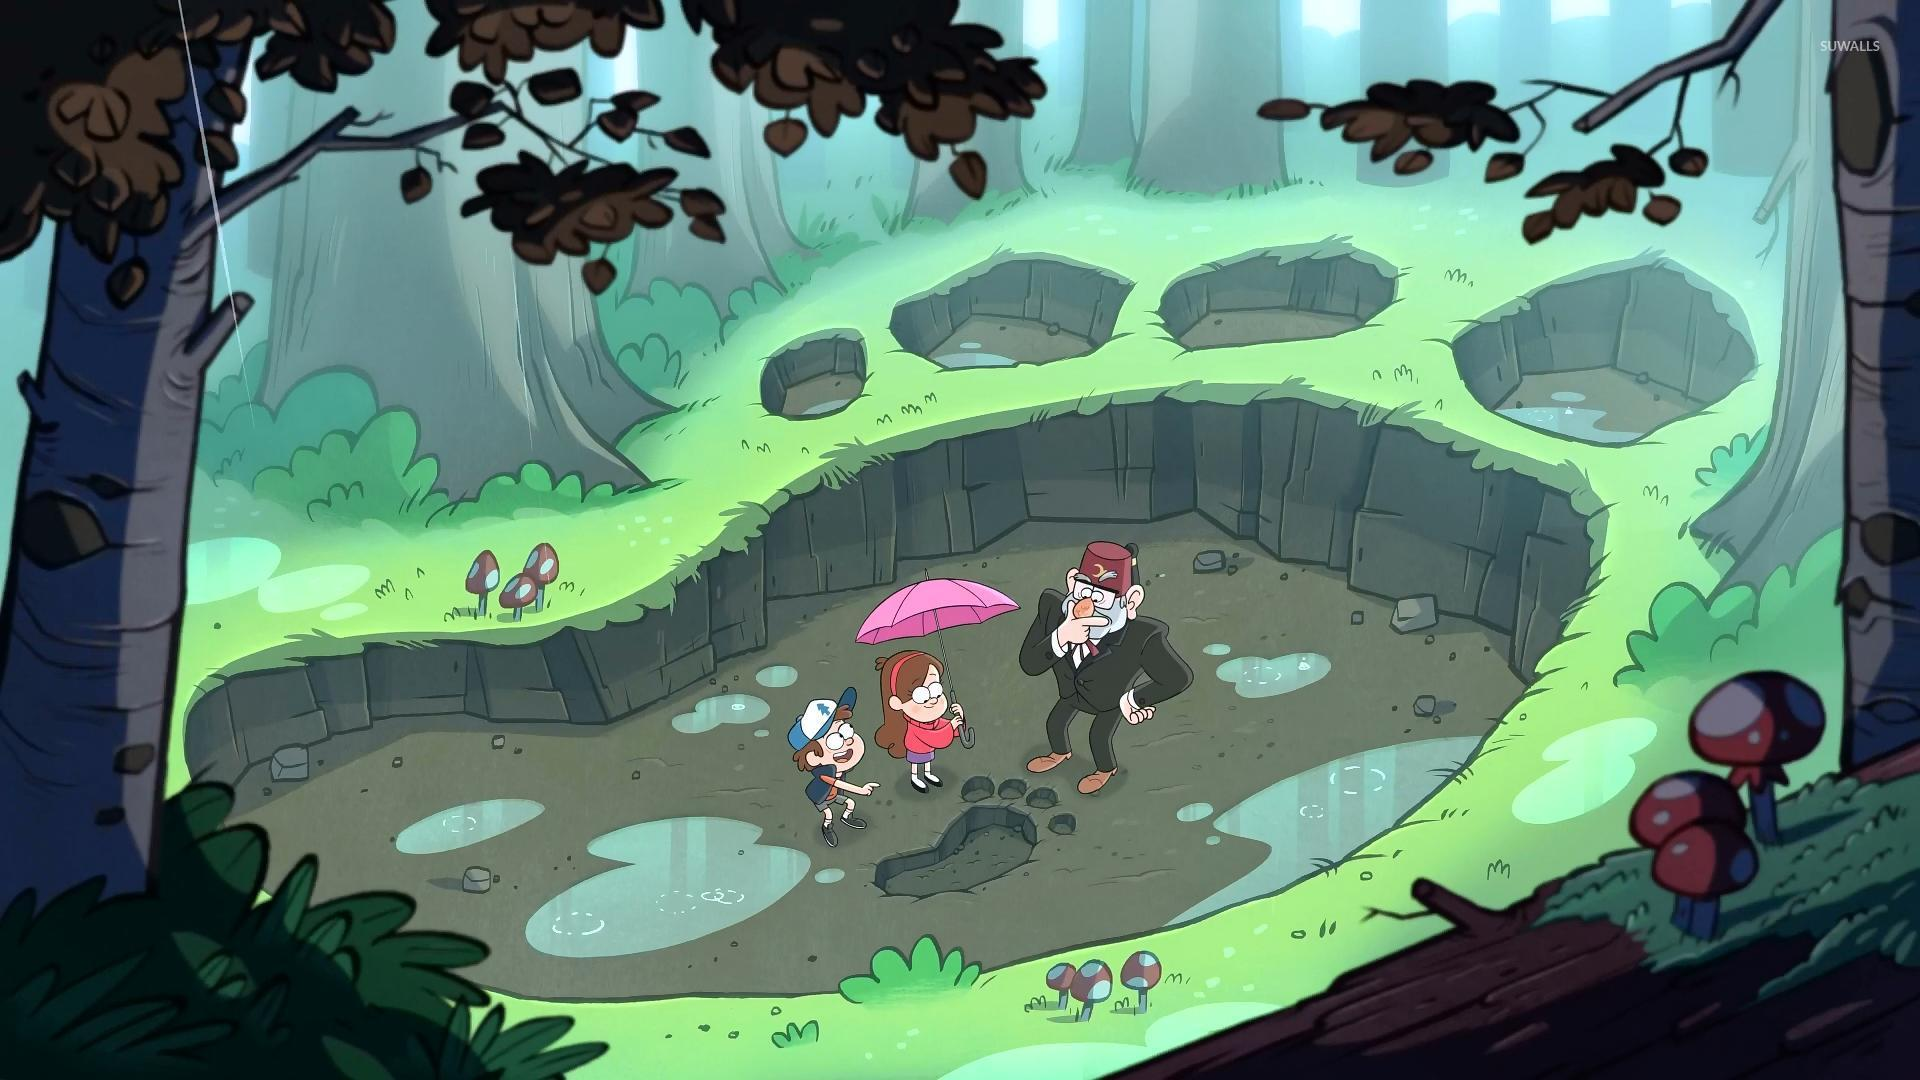 Gravity Falls Wallpaper Ipad Gravity Falls 4 Wallpaper Cartoon Wallpapers 26407